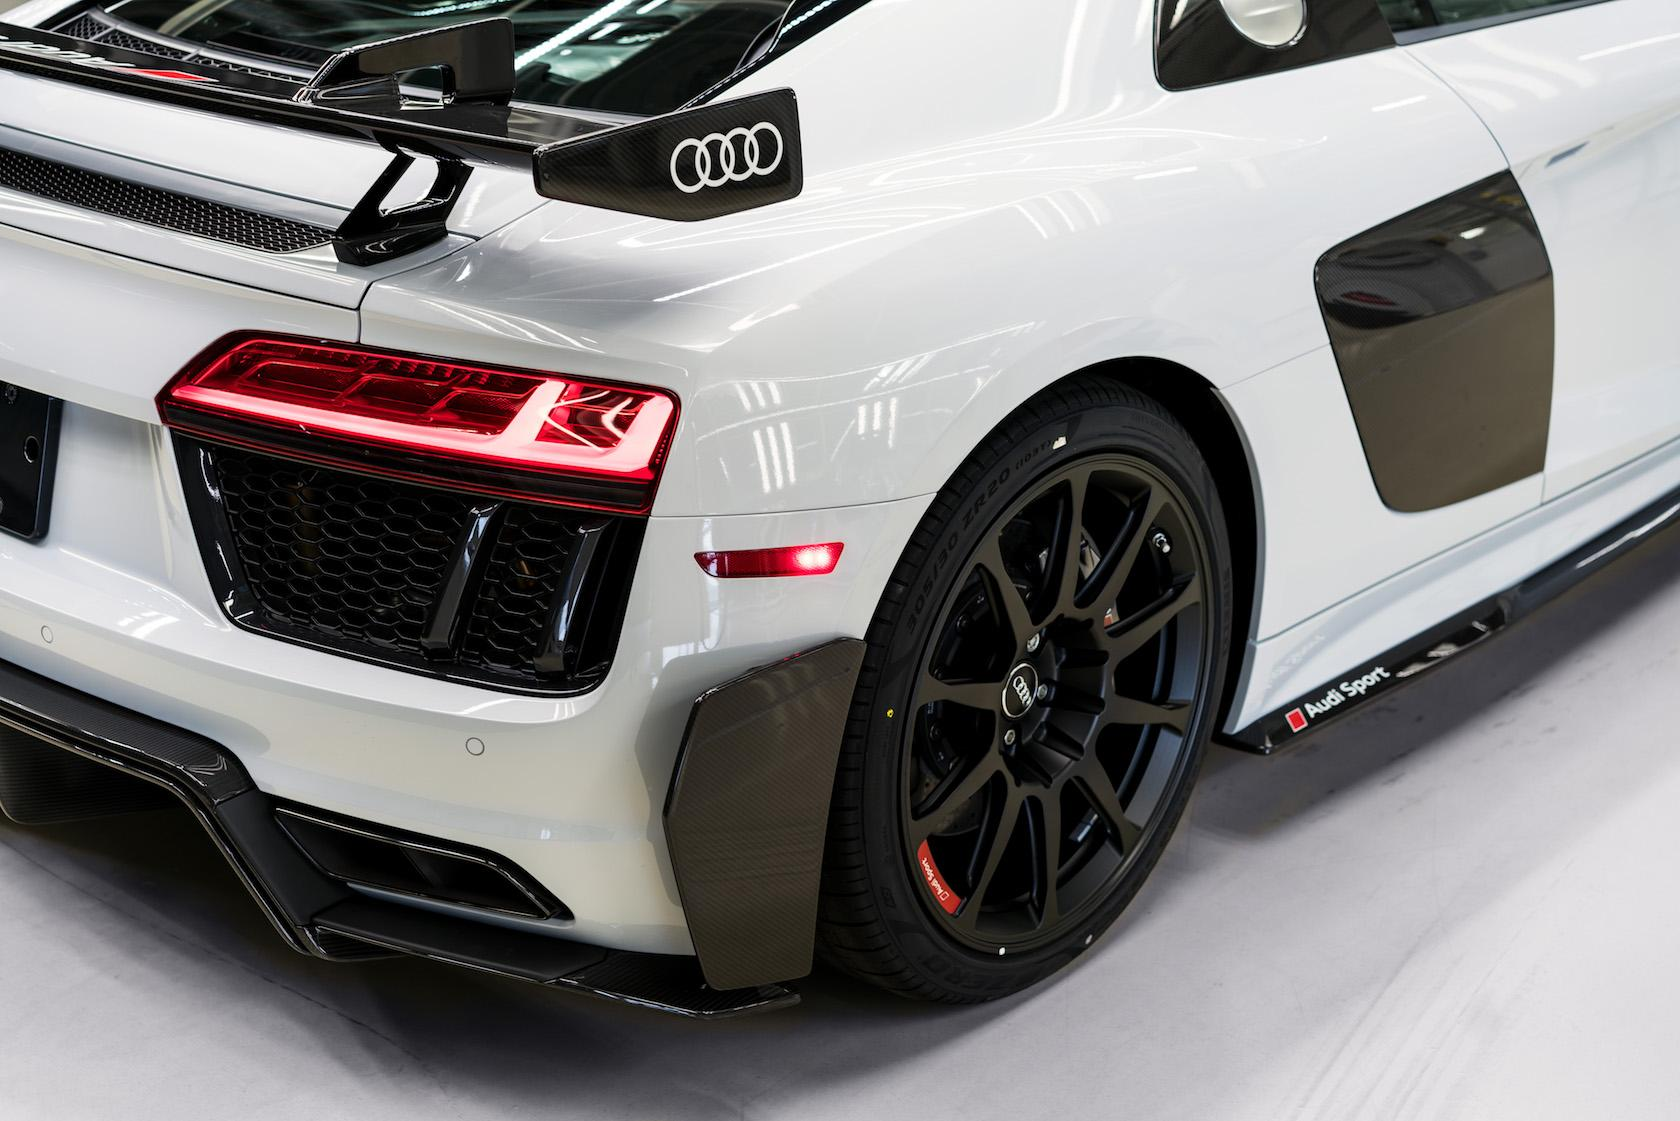 2018 Audi R8 V10 Competition maxes out the everyday supercar